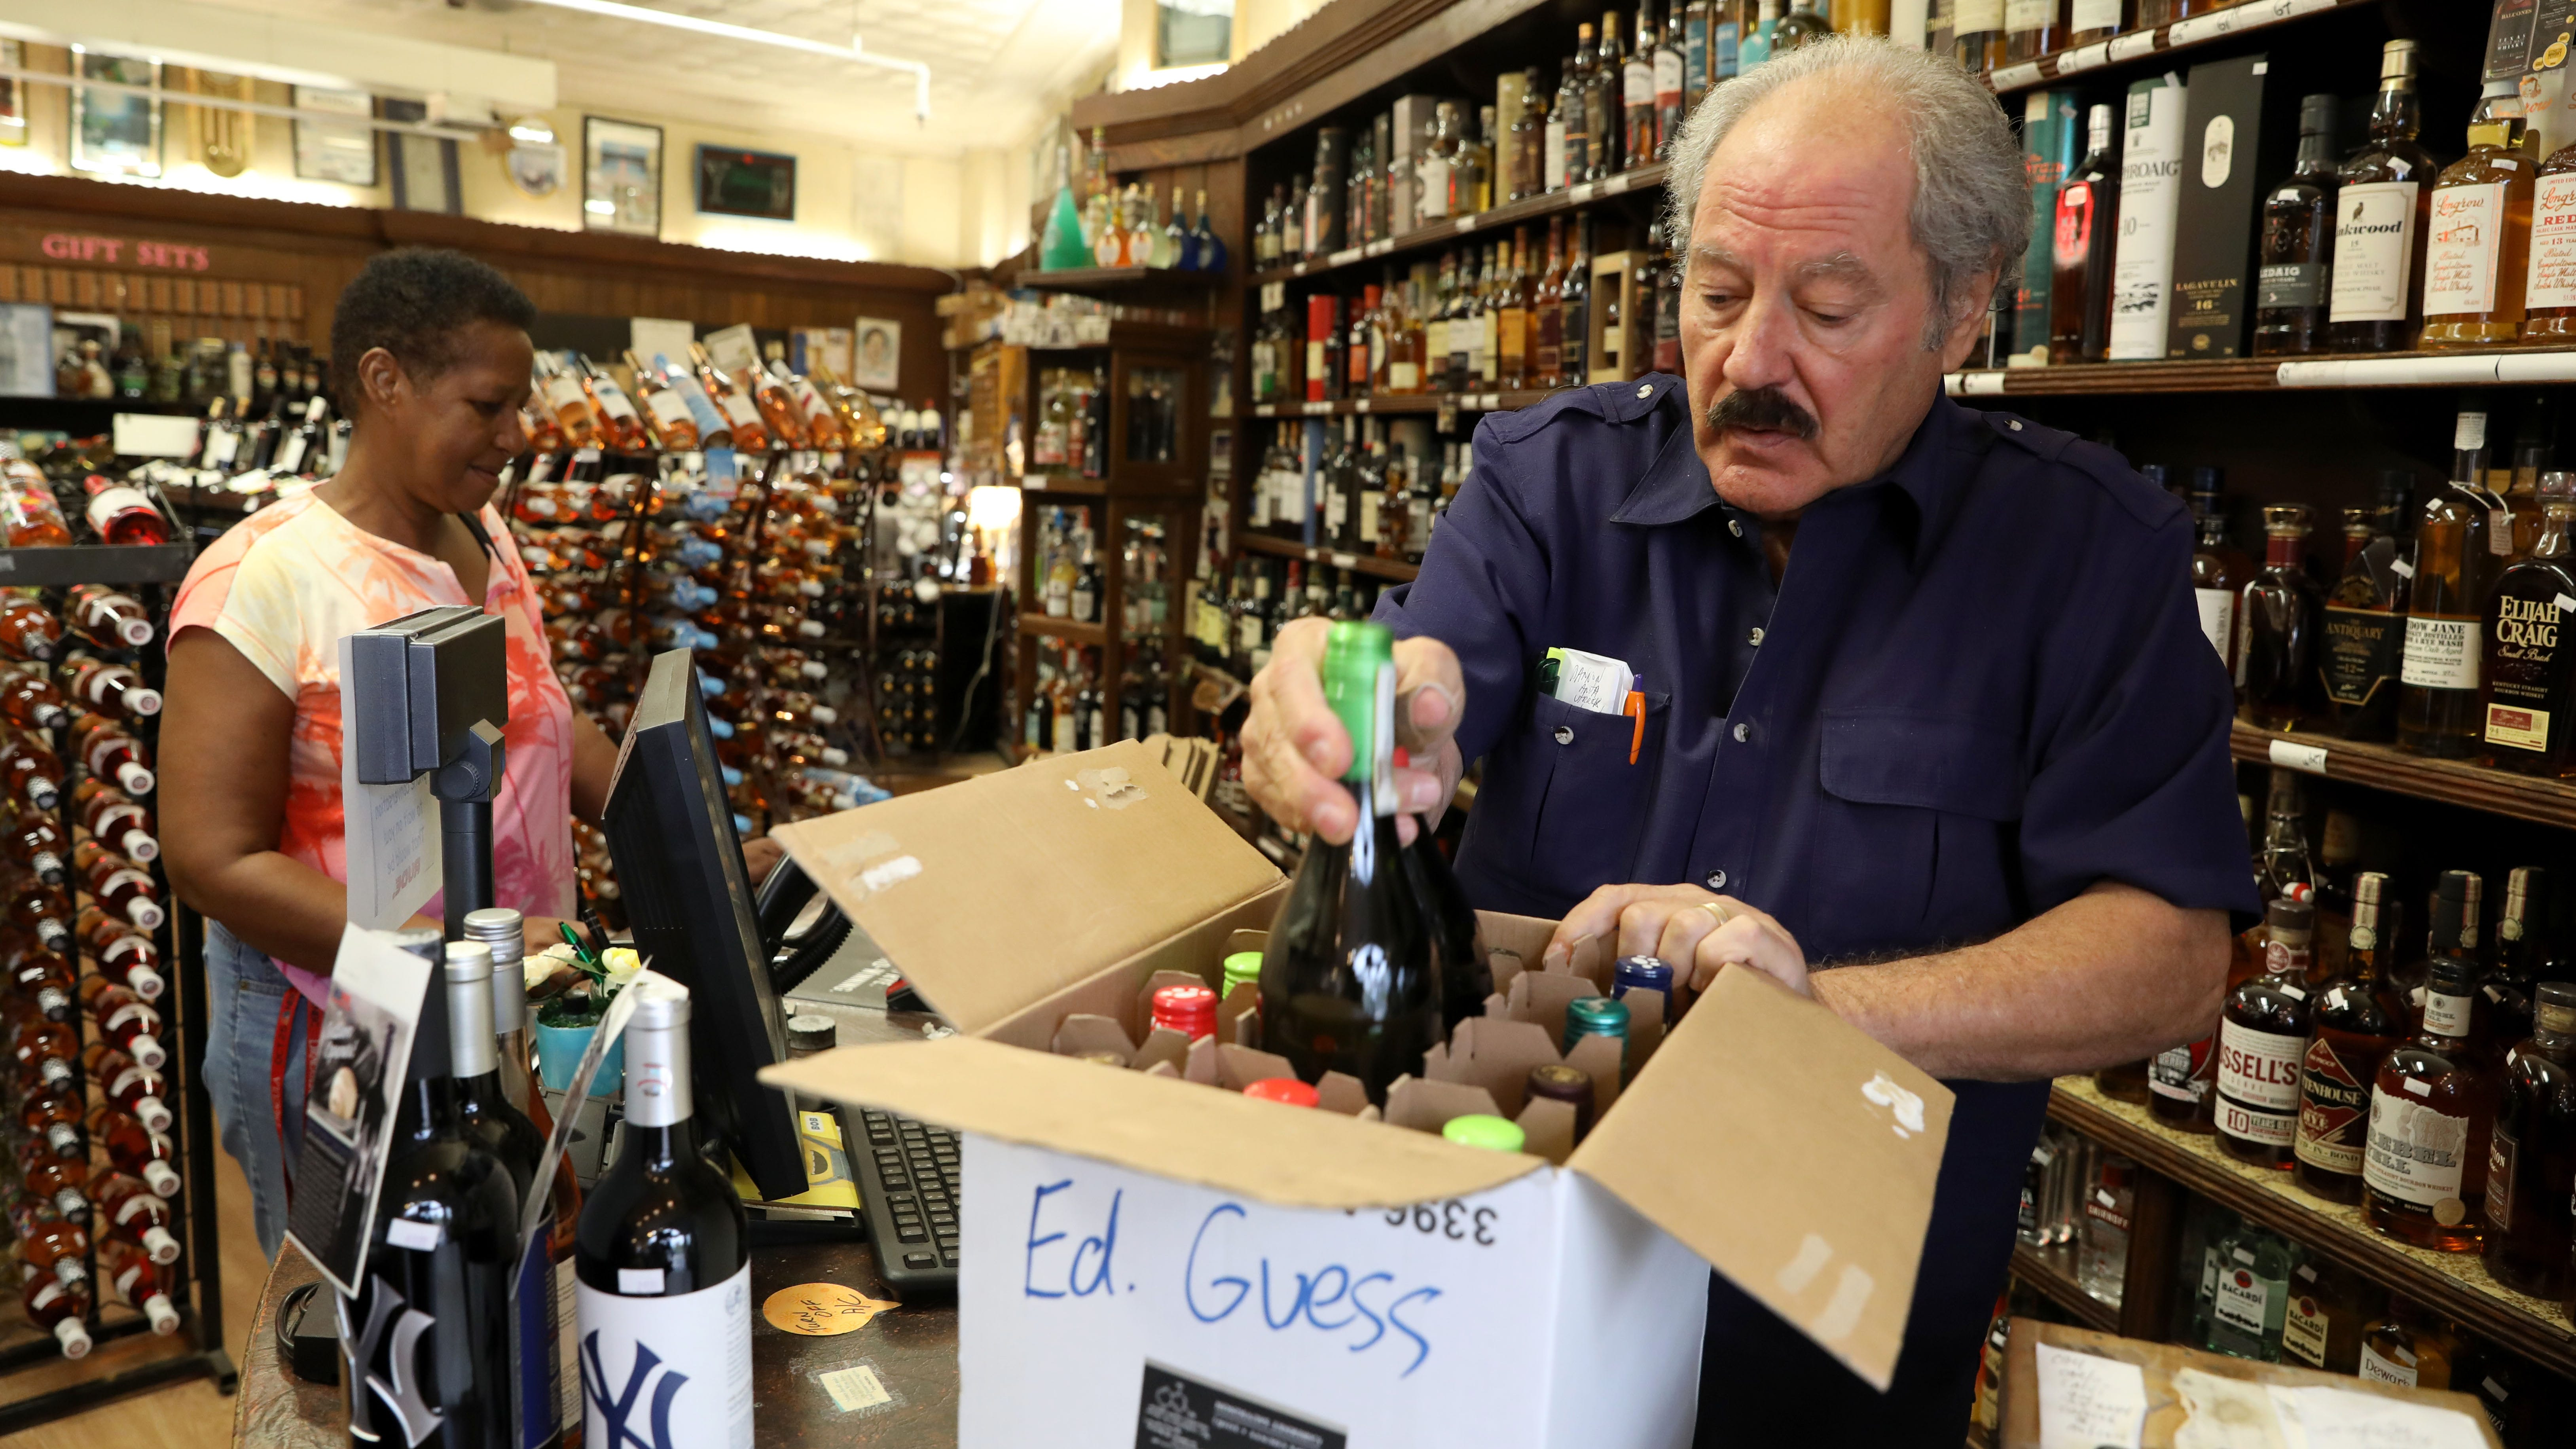 Local liquor stores lobby against giant newcomer in Greenburgh